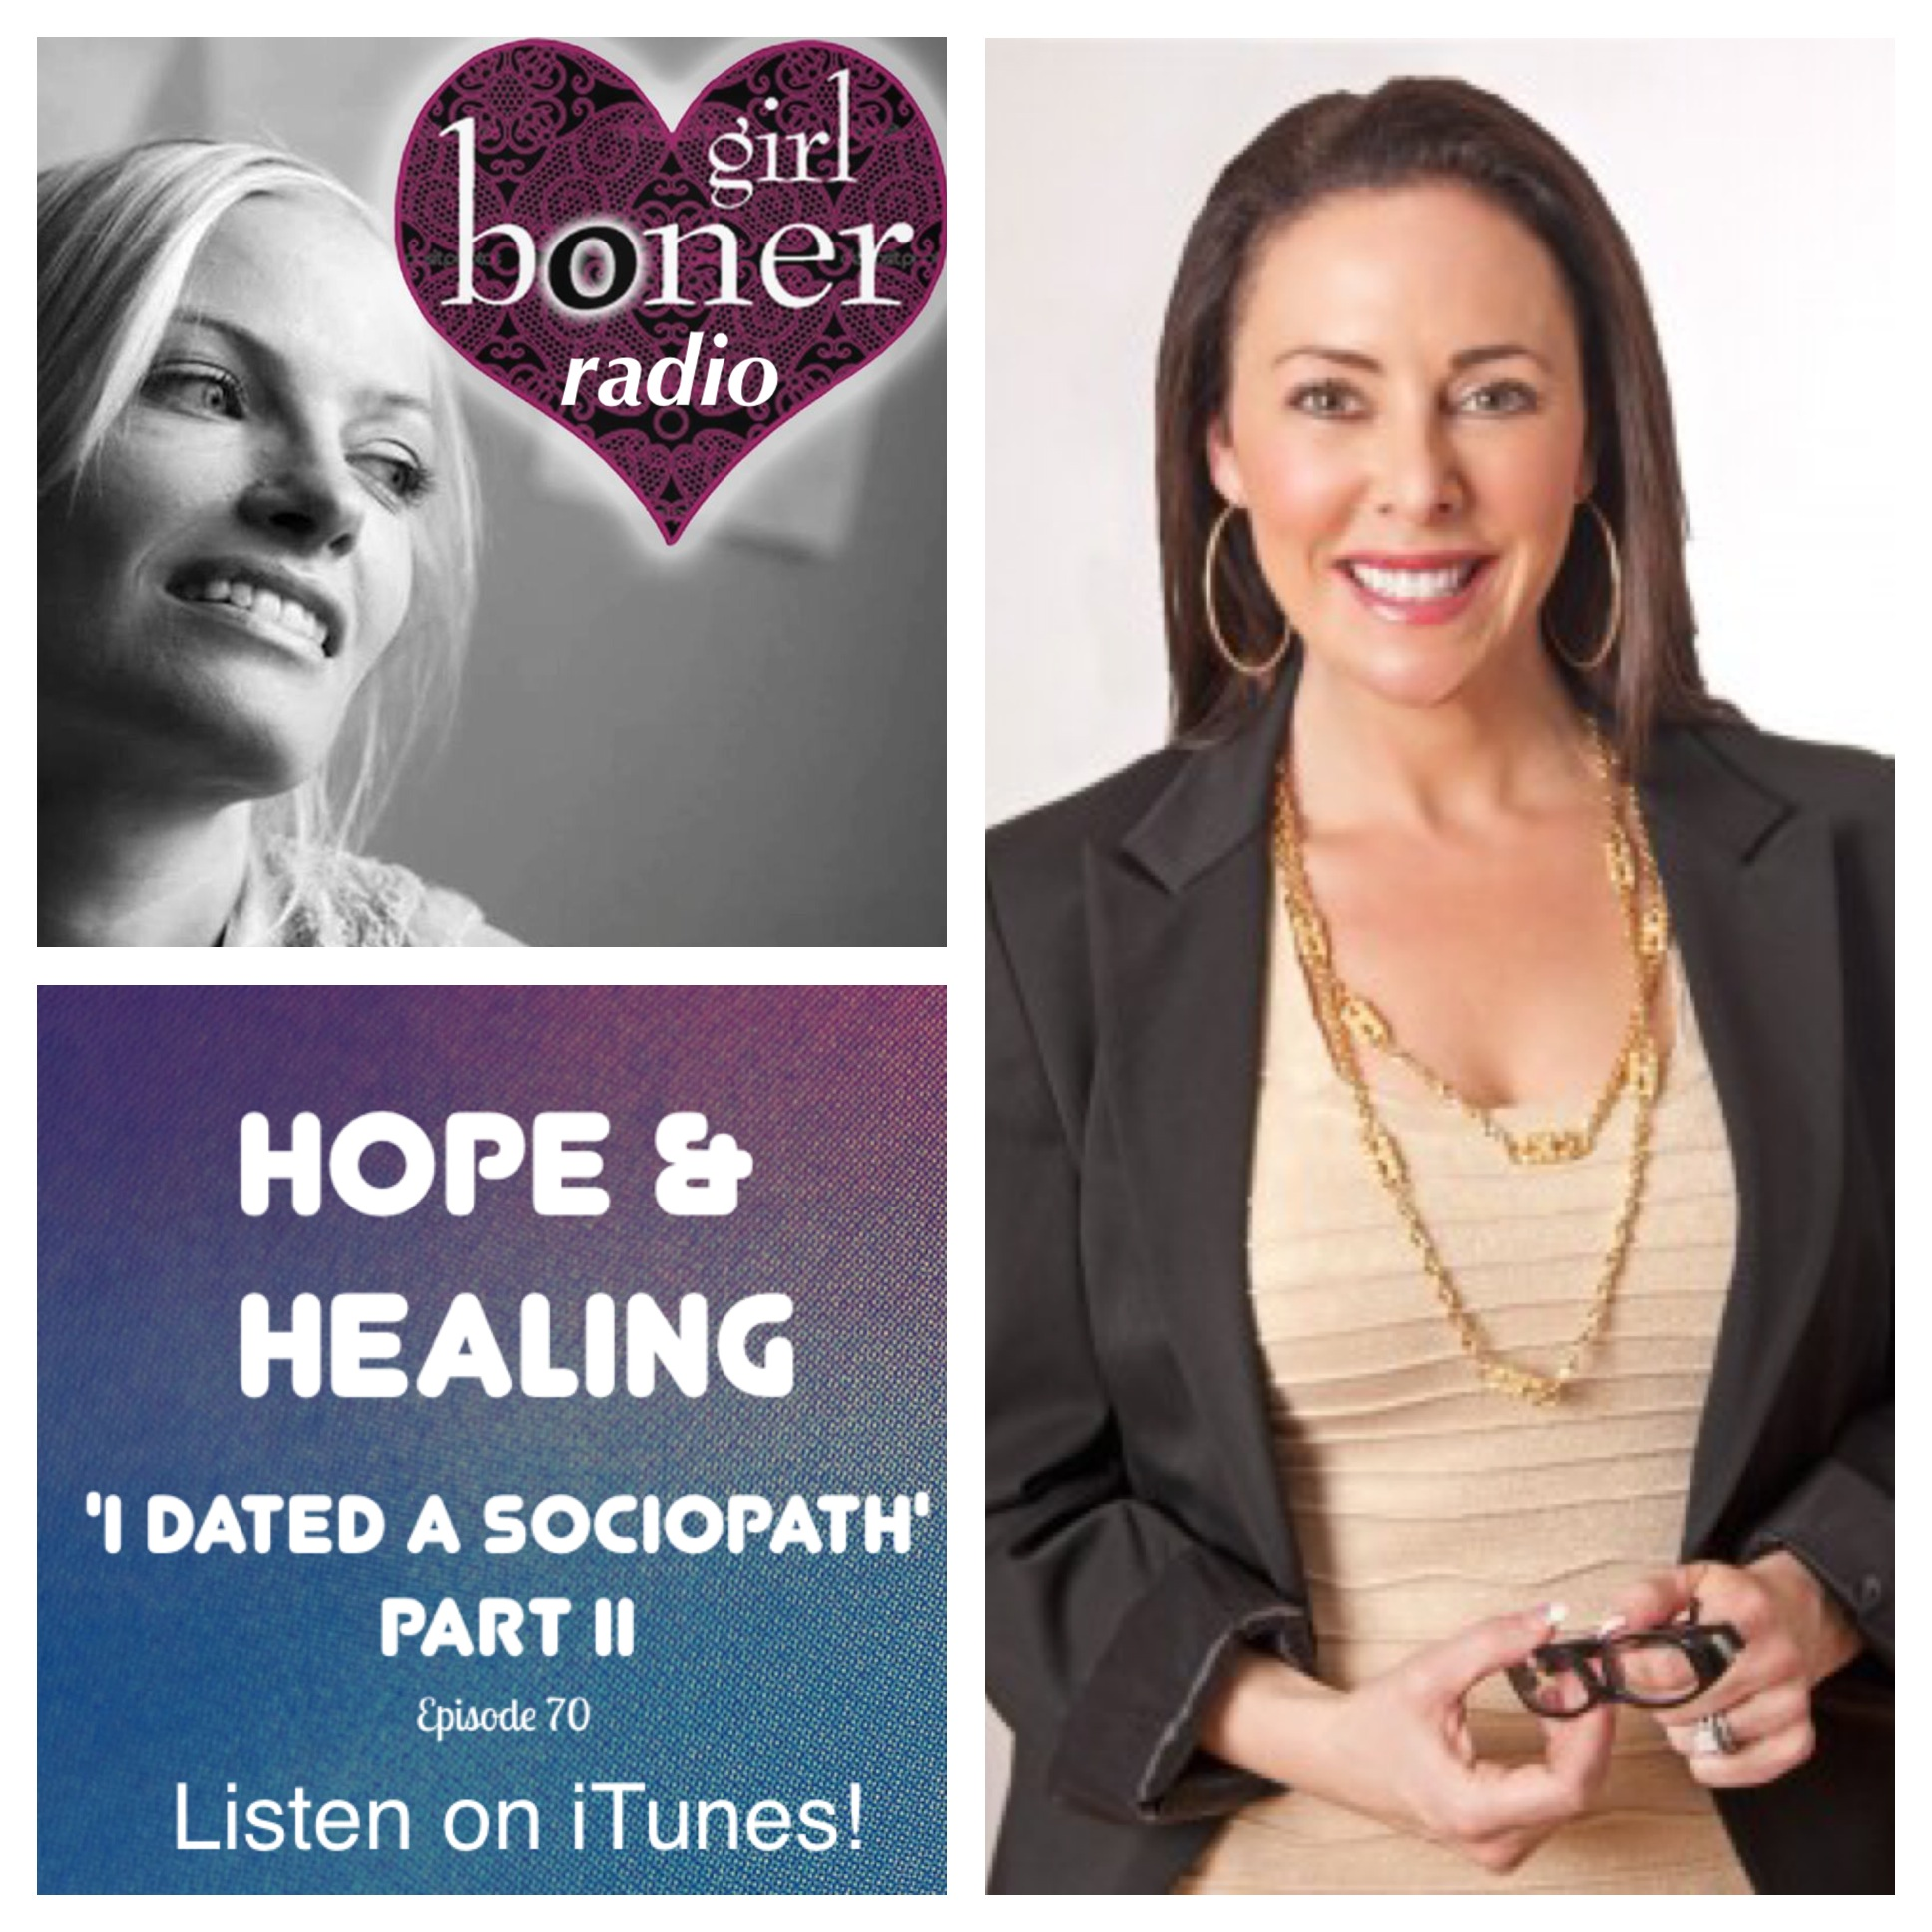 Healing after dating a borderline